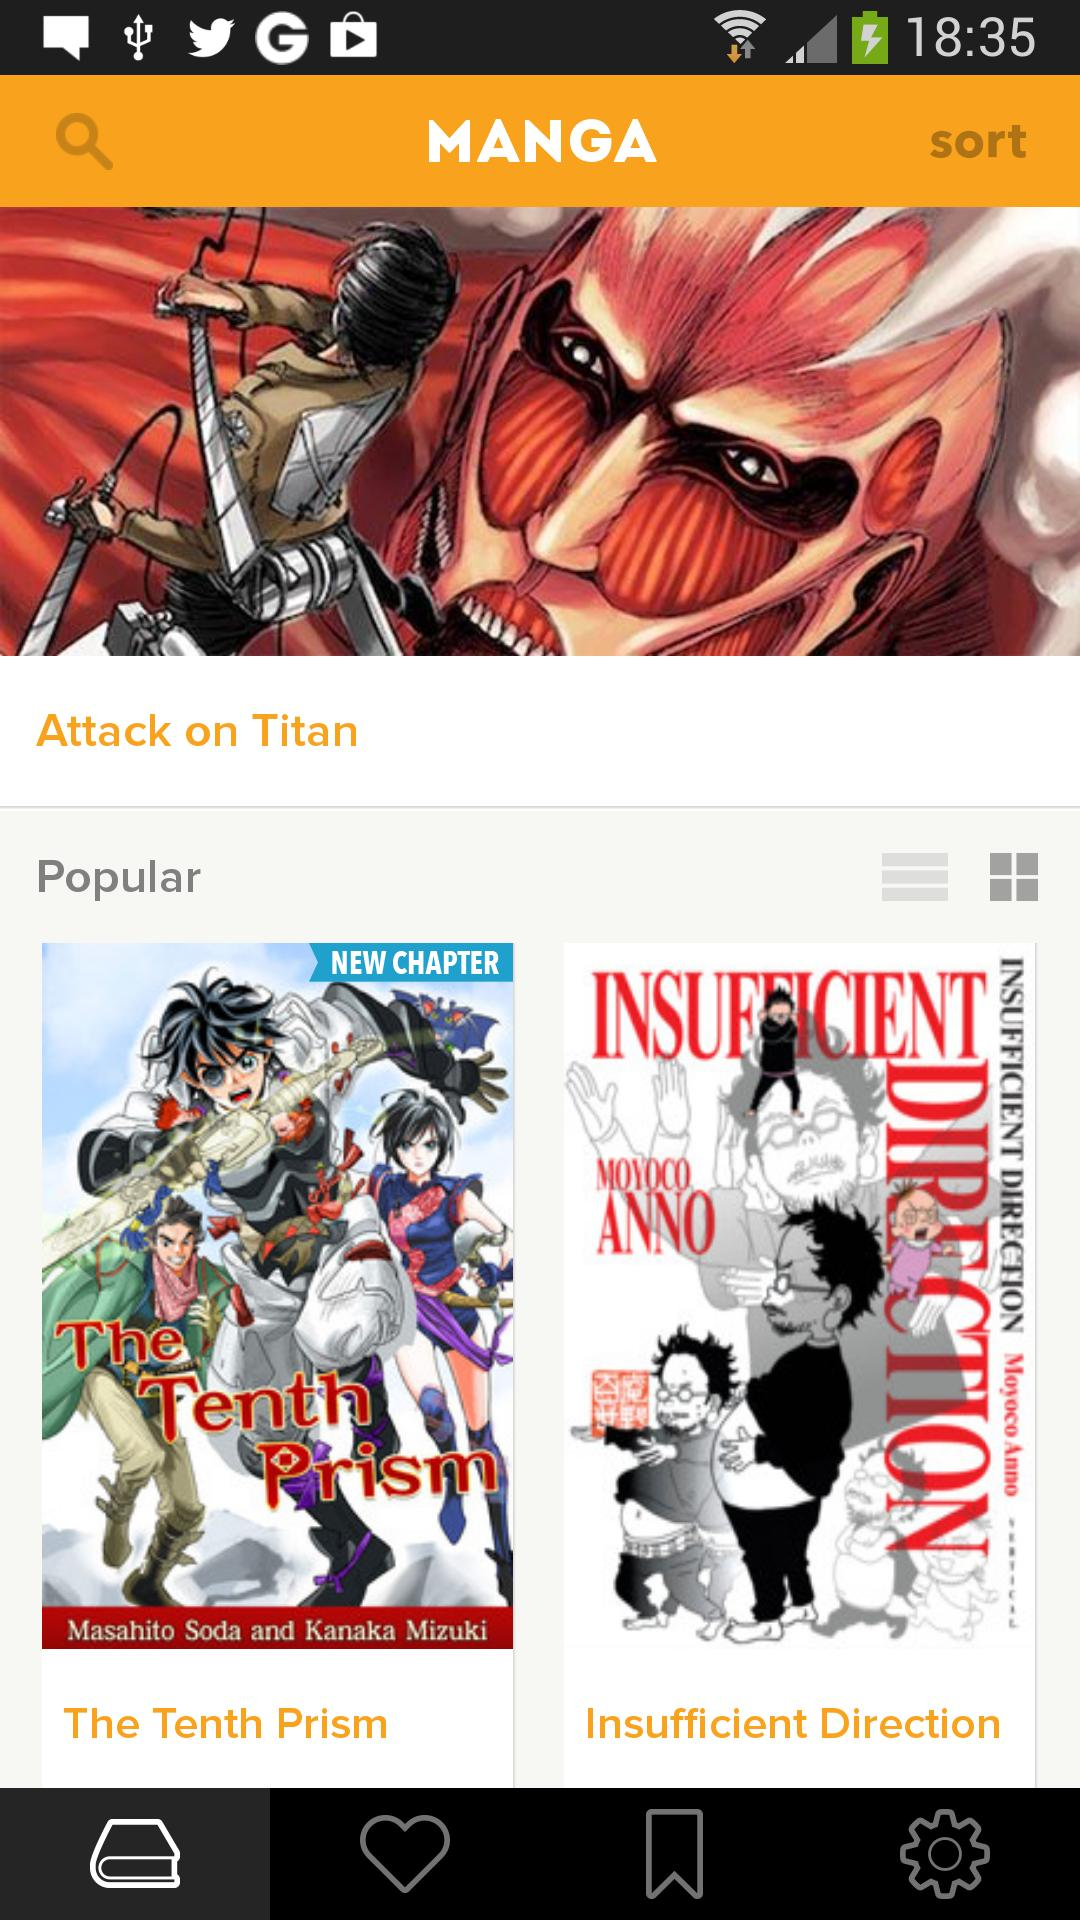 Crunchyroll Manga 4.1.1 Screenshot 1